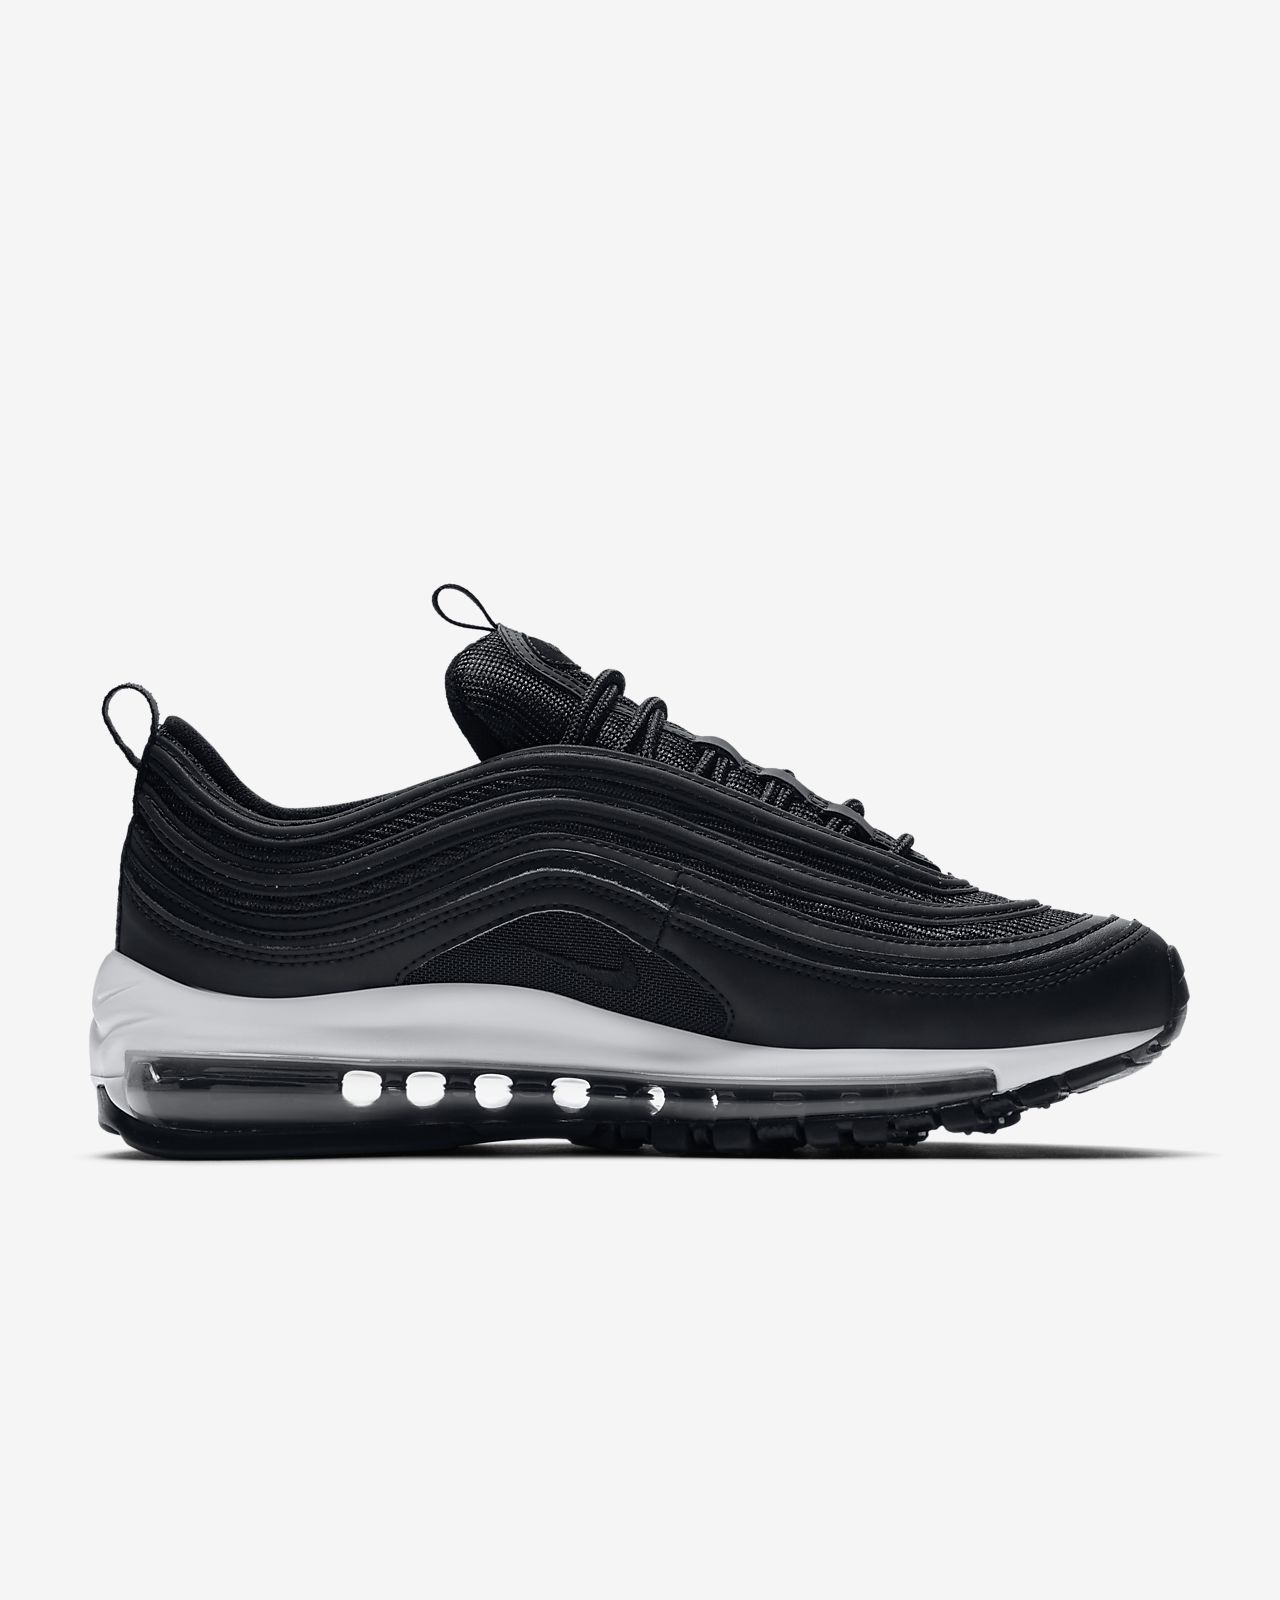 Nike Air Max 97 Engineered Mesh